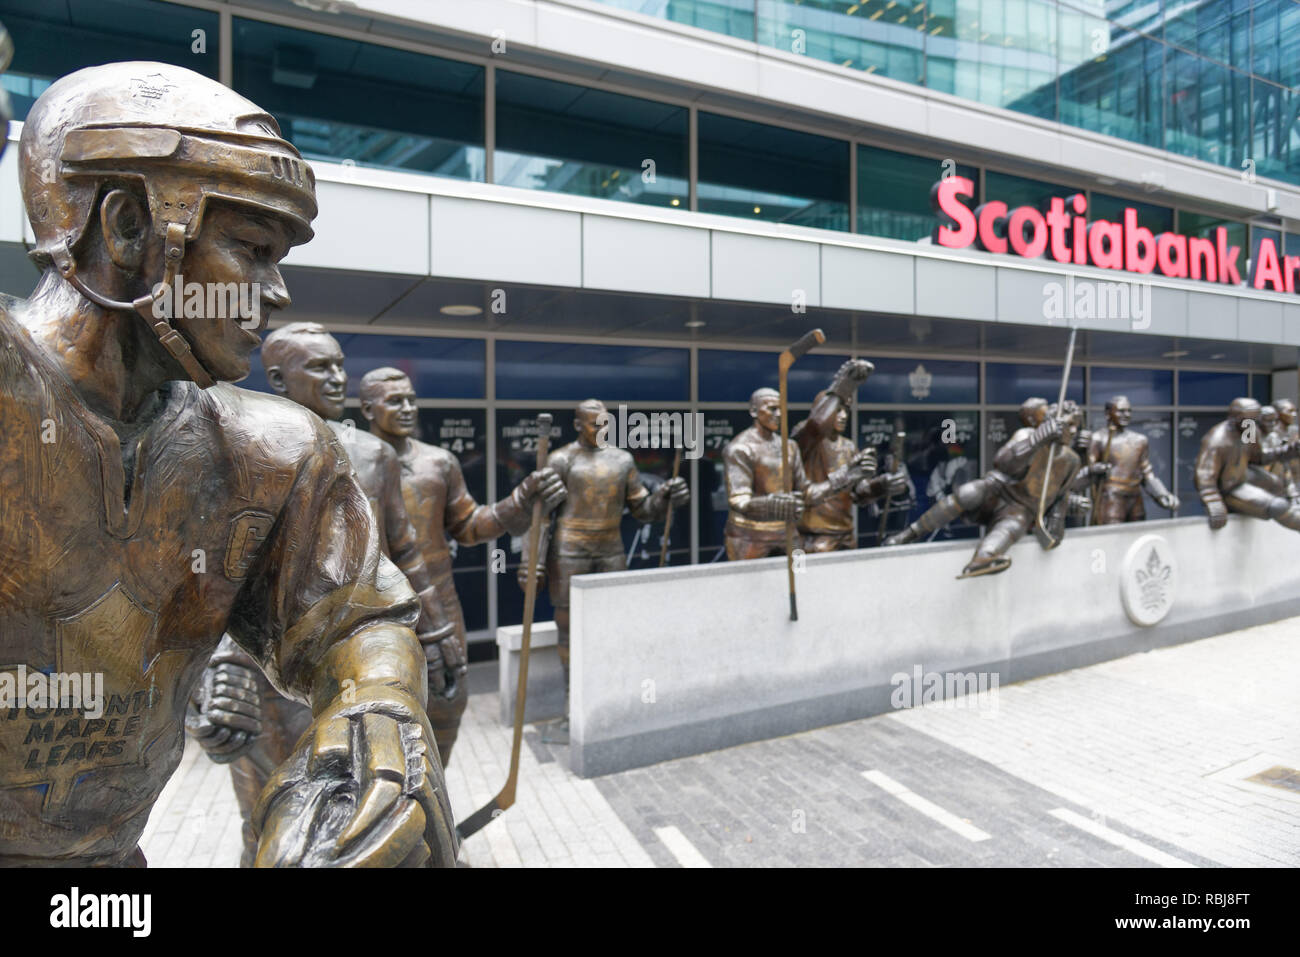 Life size sculpture of hockey players on Maple Leaf Square outside the Scotiabank Arena in Toronto, Canada - Stock Image